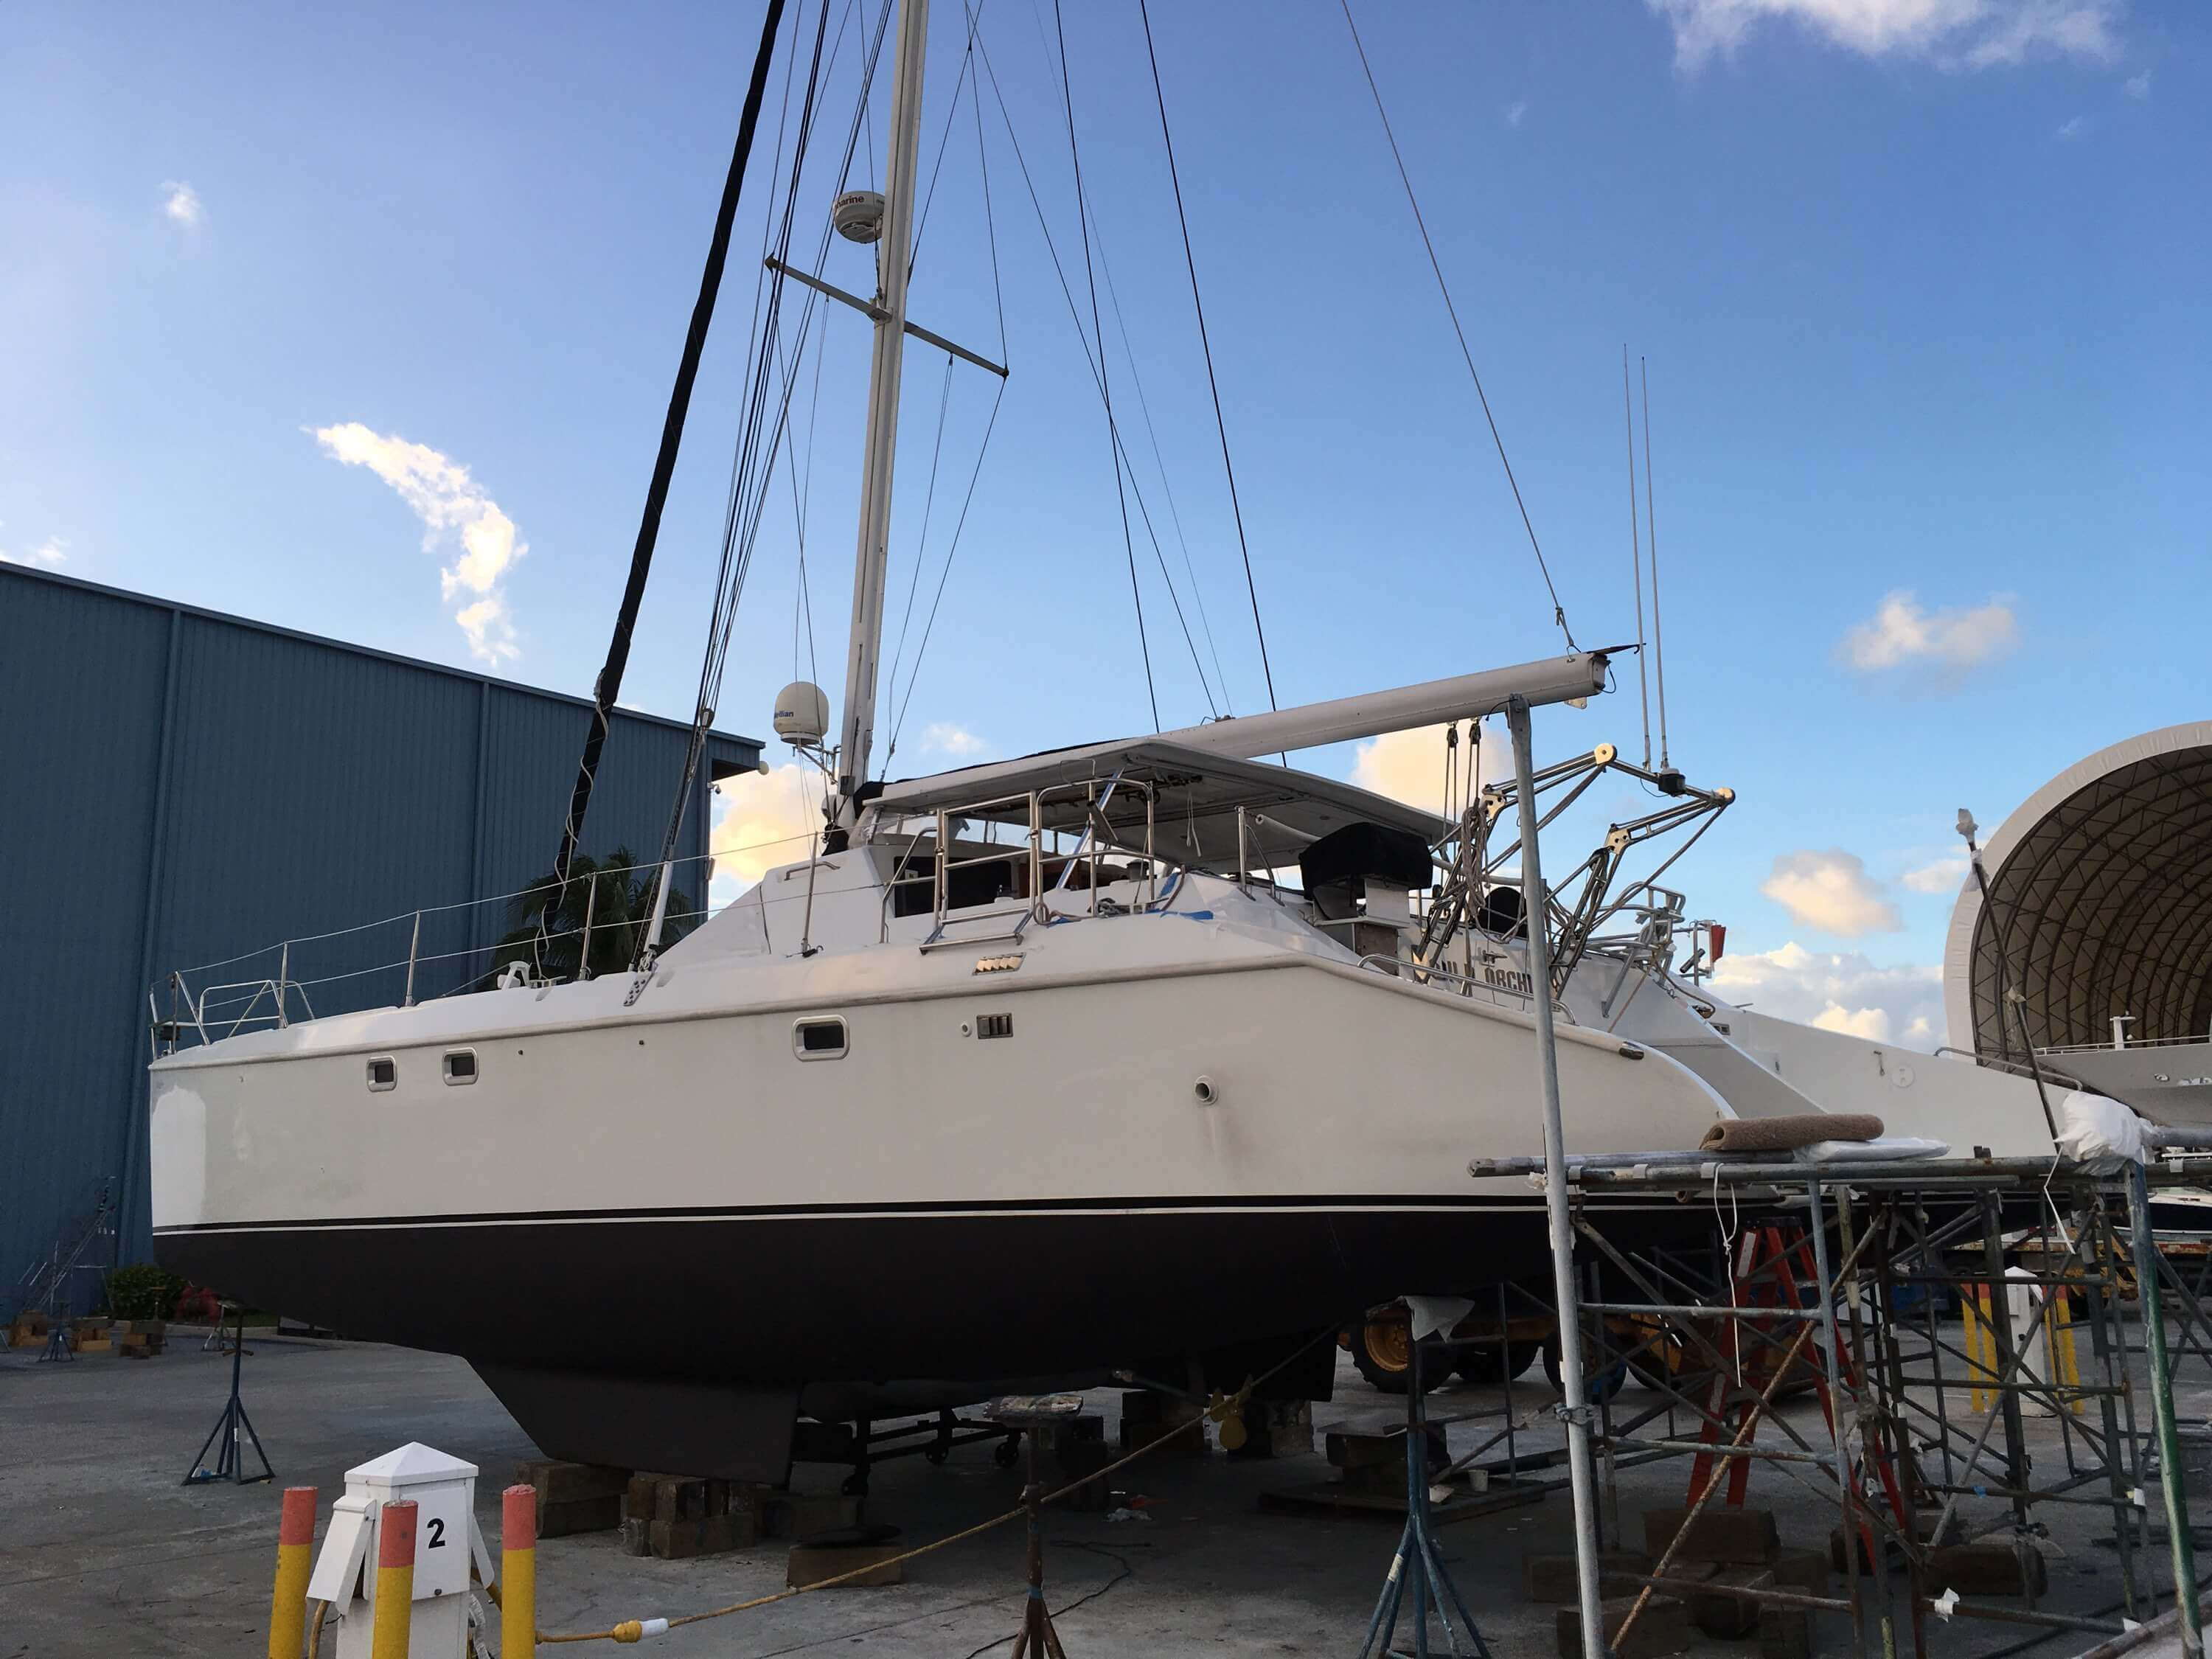 Used Sail Catamaran for Sale 1993 43 Additional Information